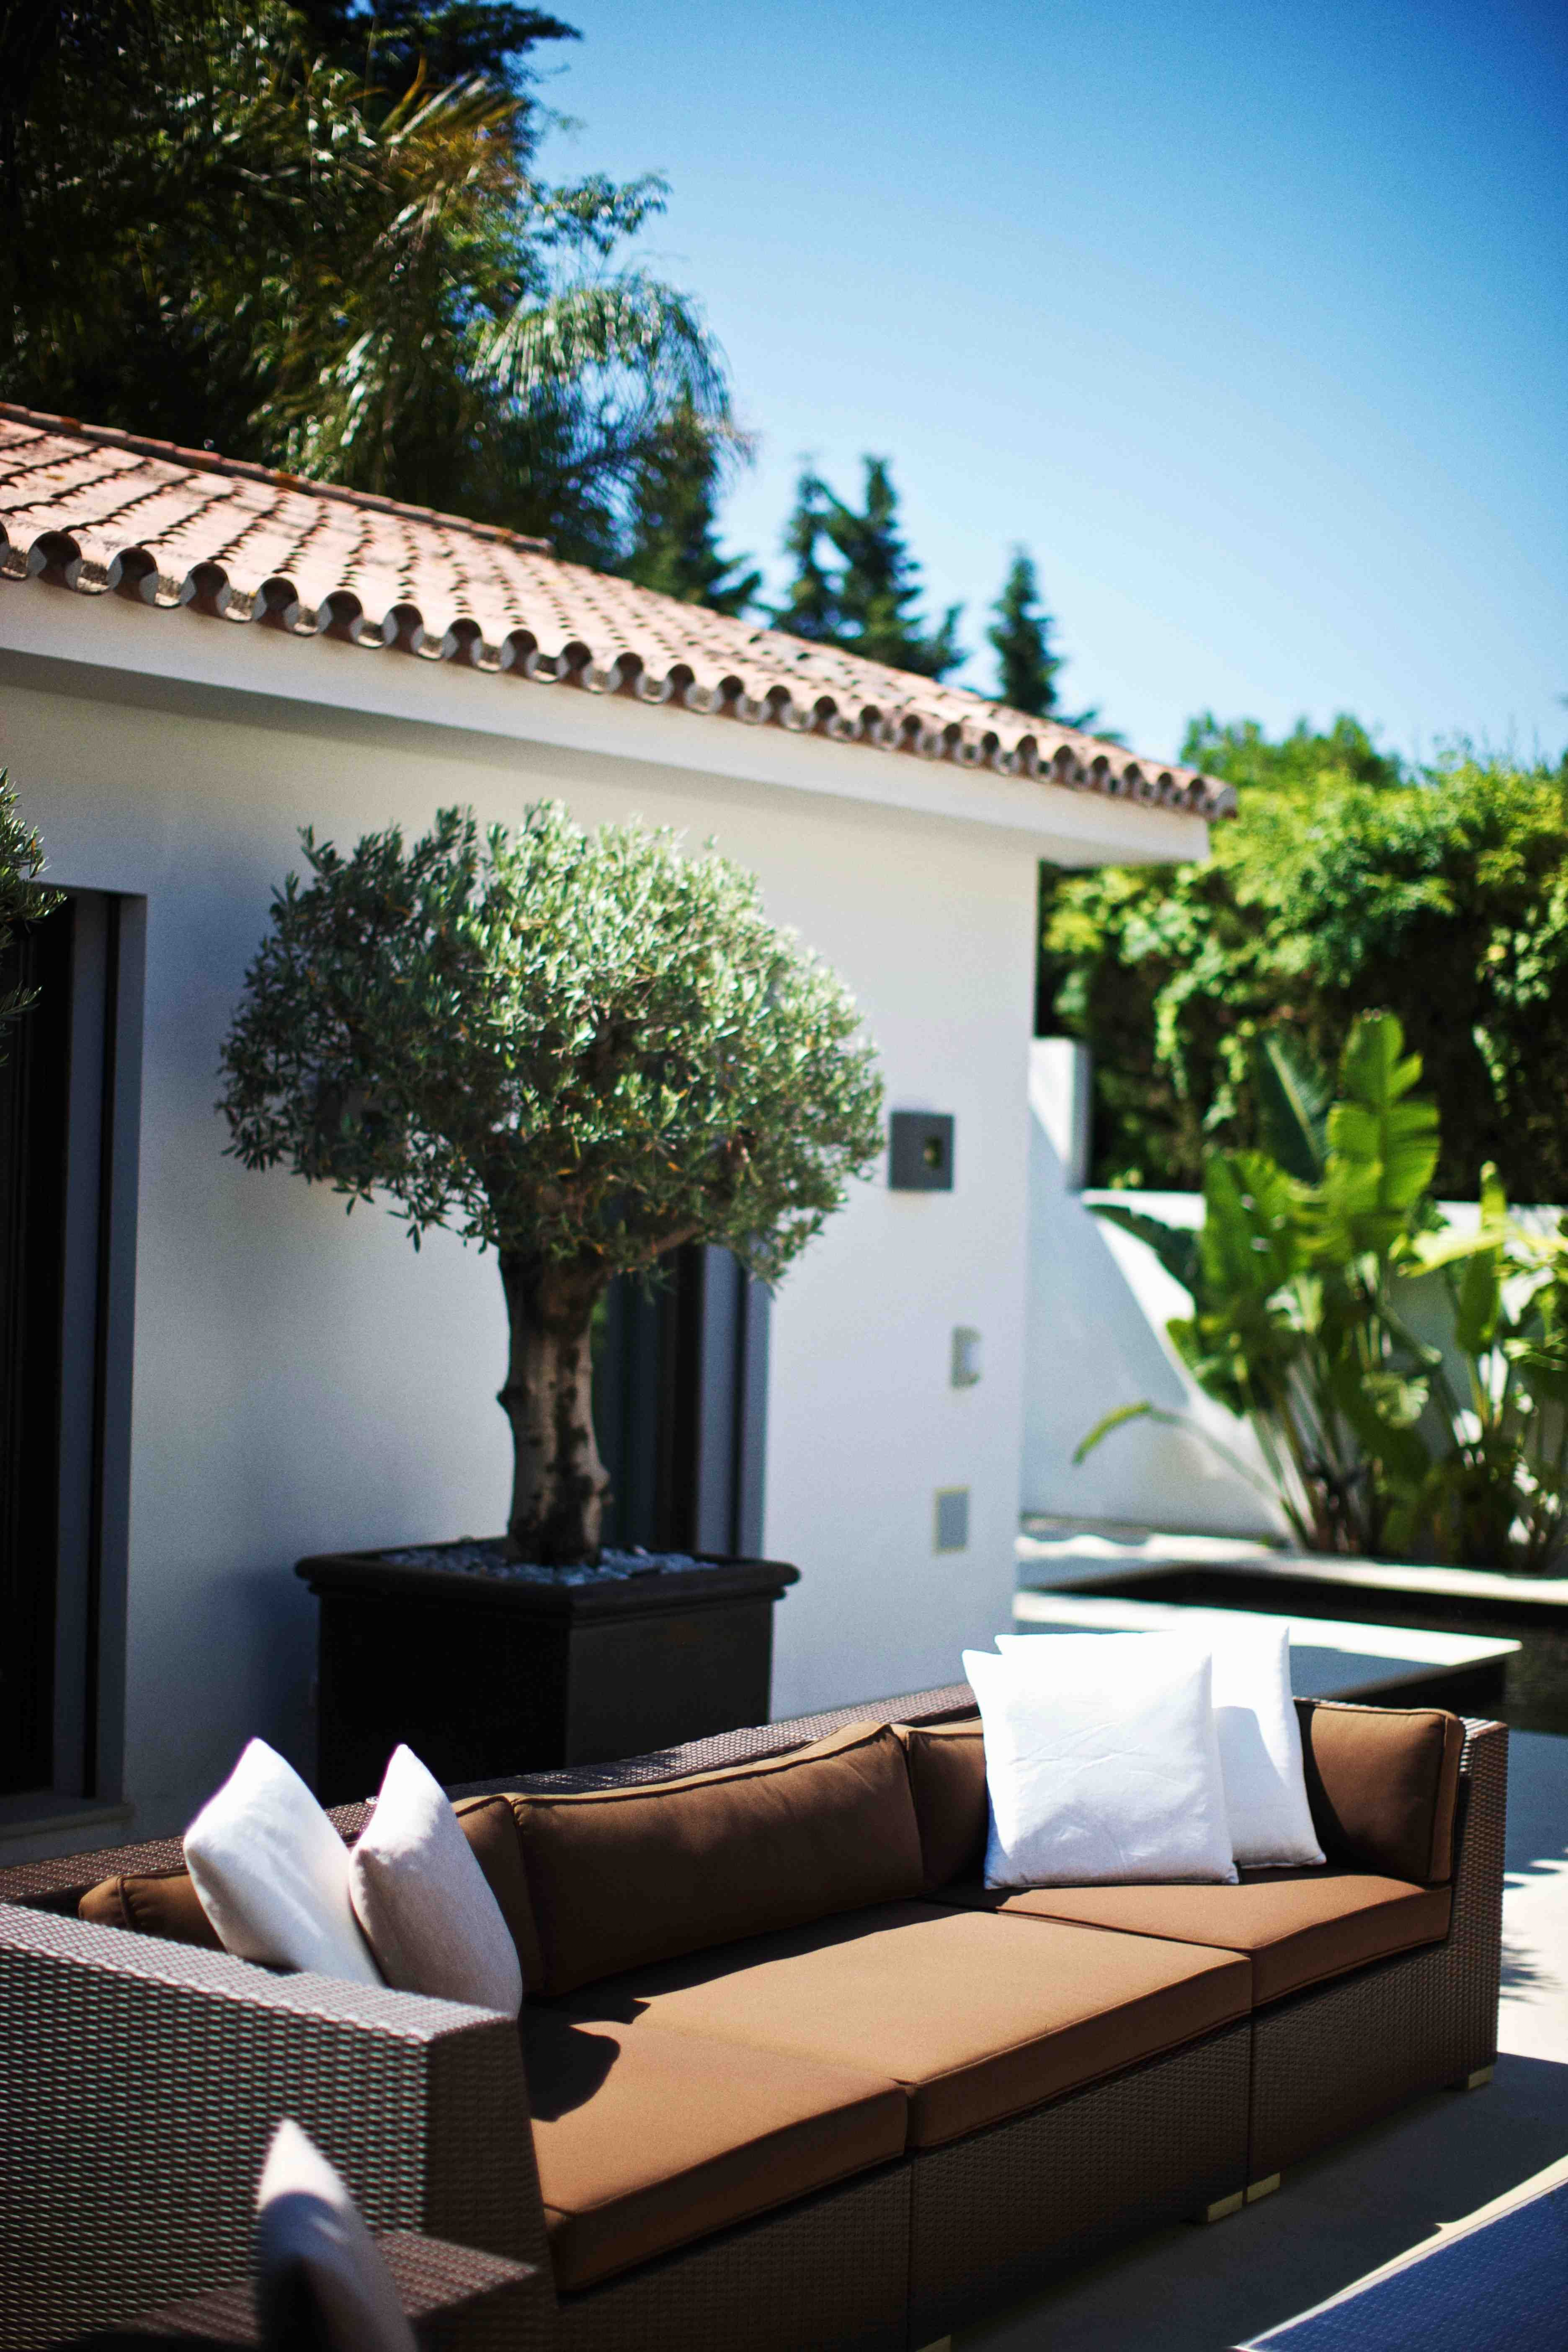 Spain private residence photo 39 s by paul barbera for Divano in spagnolo